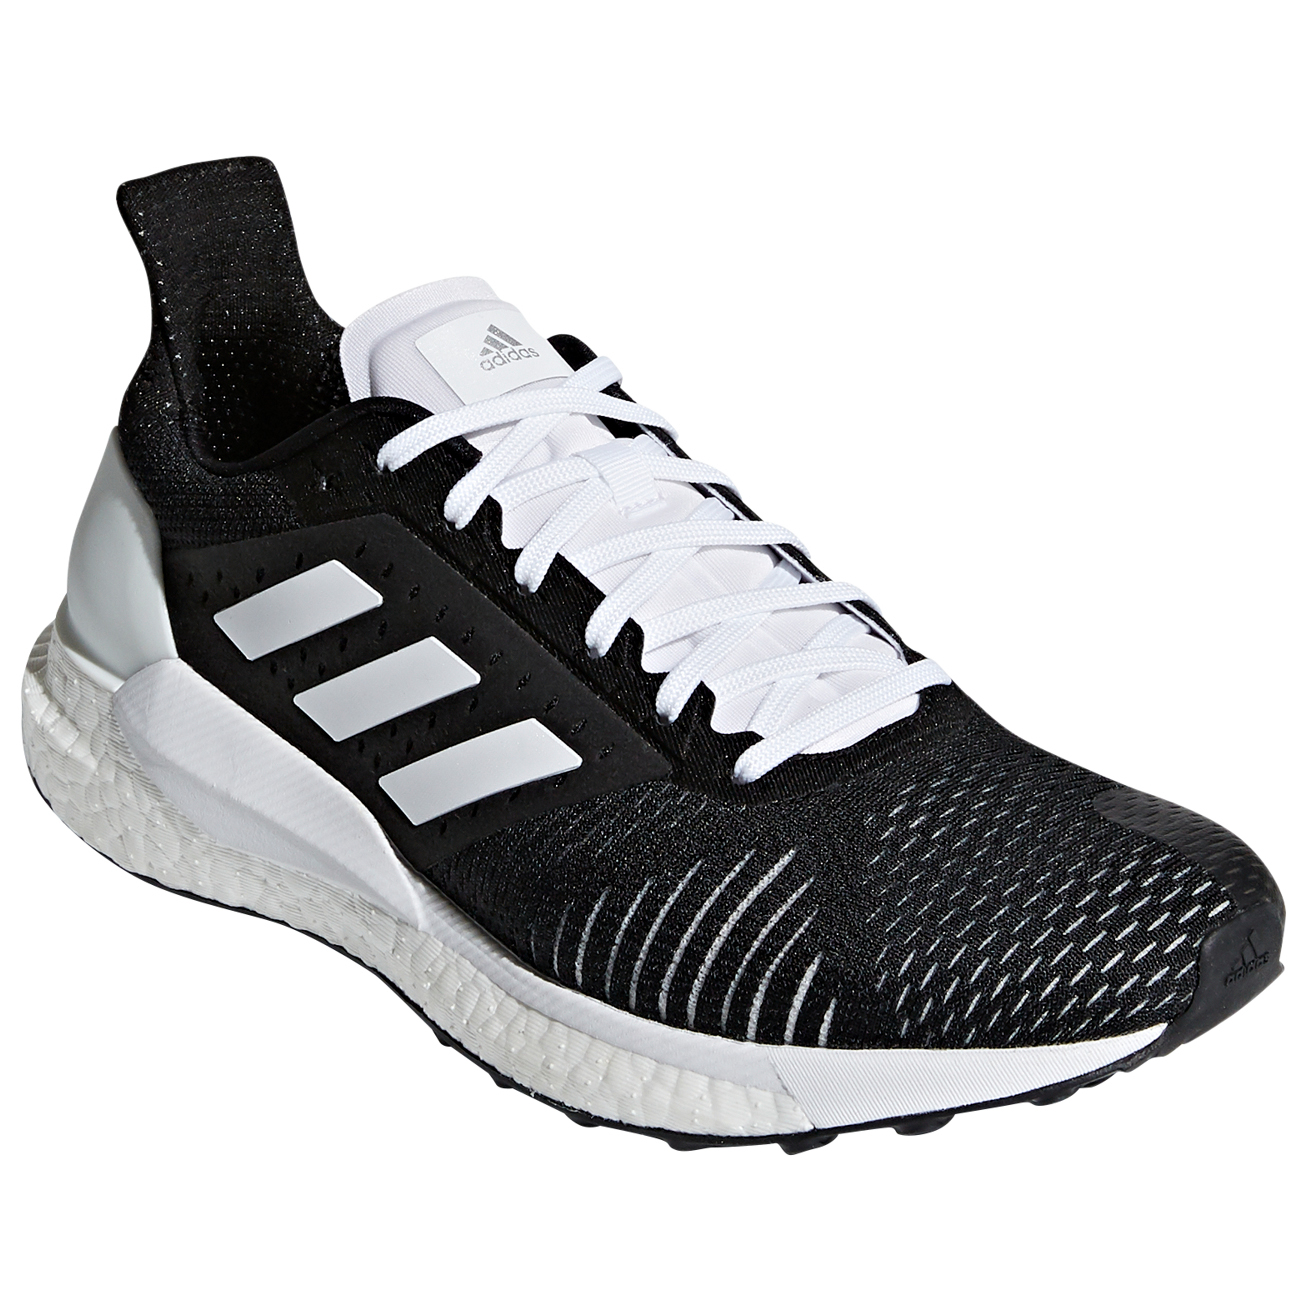 Adidas Solar Glide ST - Running shoes Women's | Buy online ...